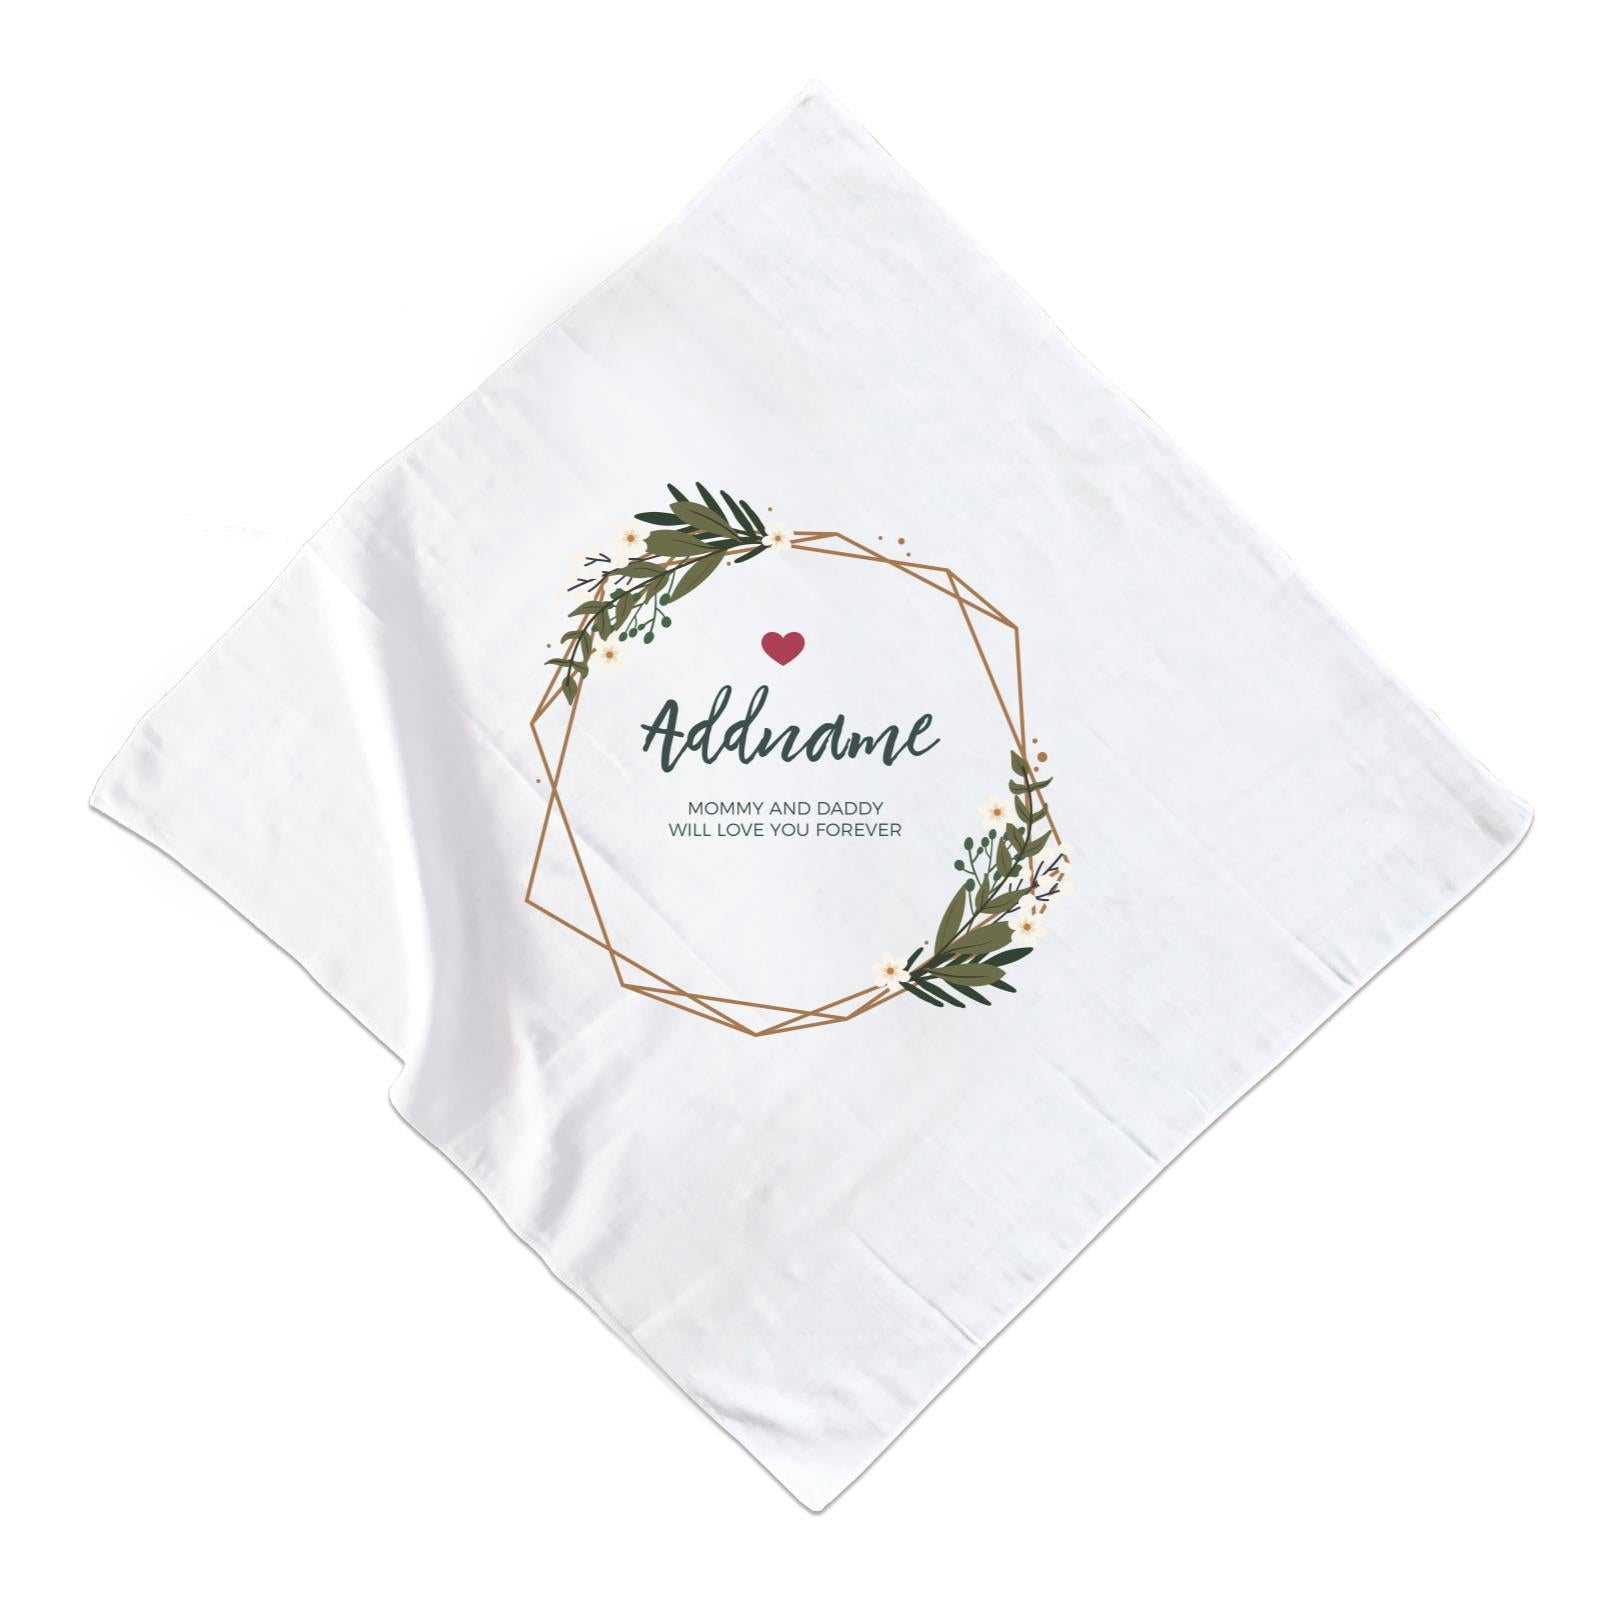 White Flowers and Geometric Frame Wreath Personalizable with Name and Text Muslin Square